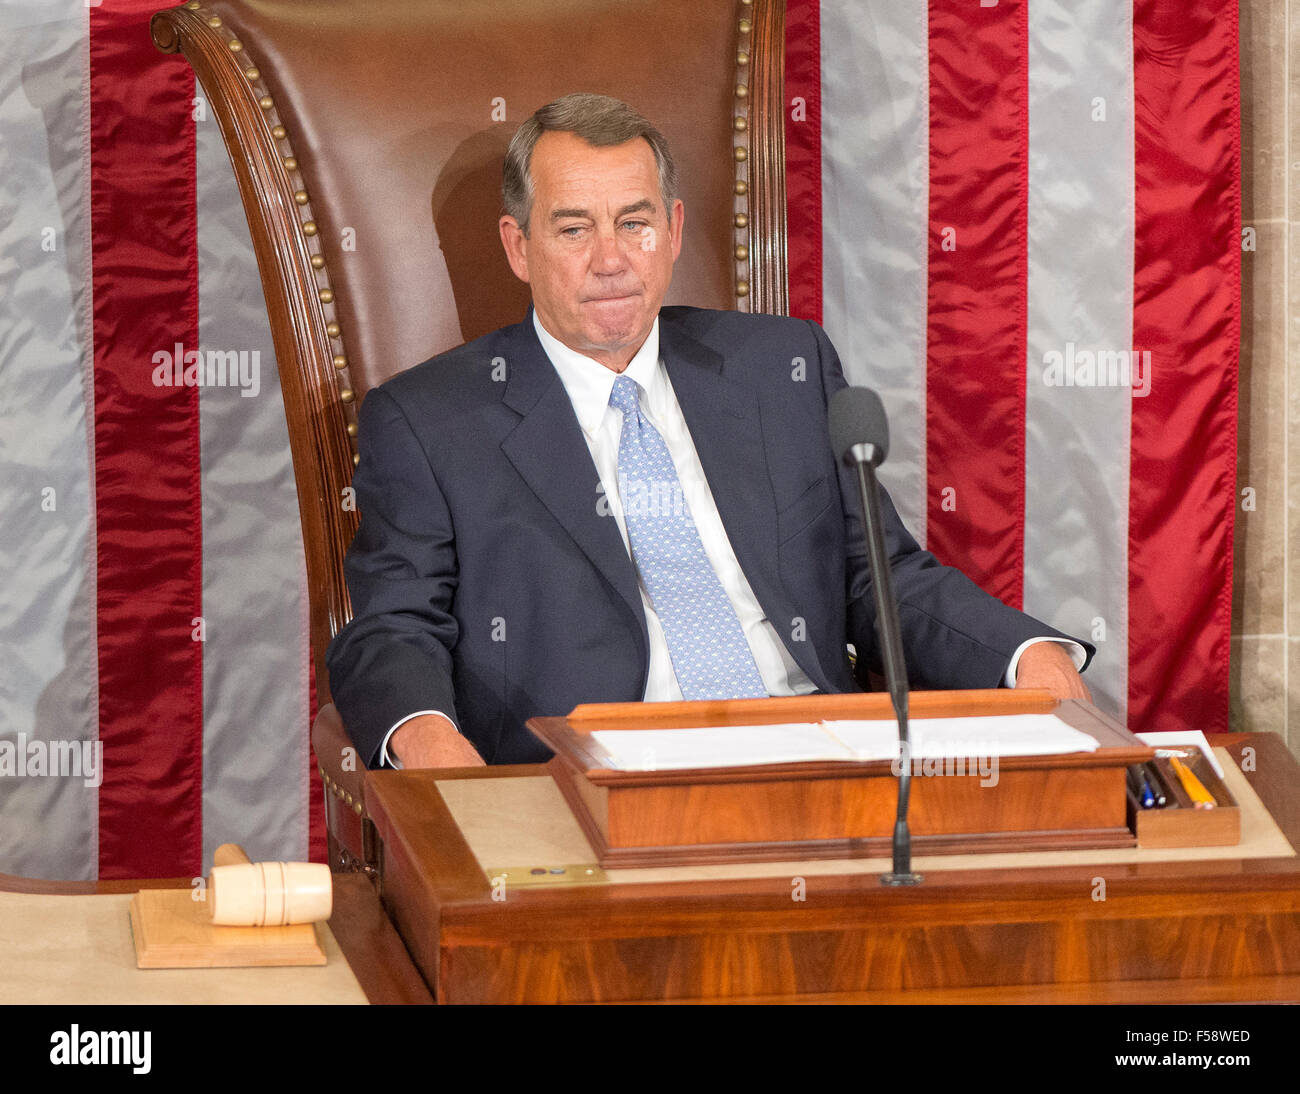 Outgoing Speaker Of The United States House Of Representatives John Boehner Republican Of Ohio Appears Lost In Thought As He Sits In